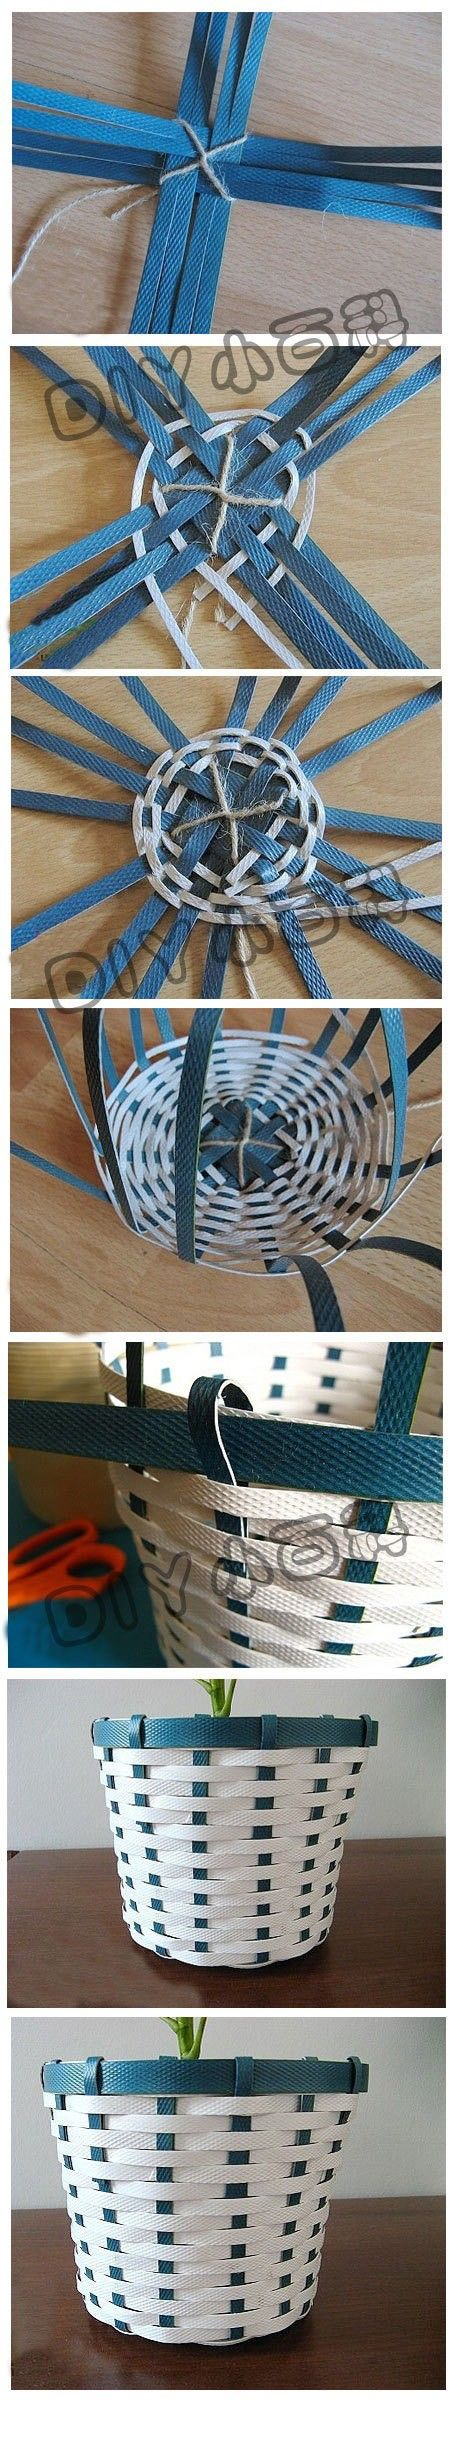 images for weaving another type of basket. Instructions are in another language, but the pictures seem self-explanatory. http://www.duitang.com/people/mblog/9964626/detail/#